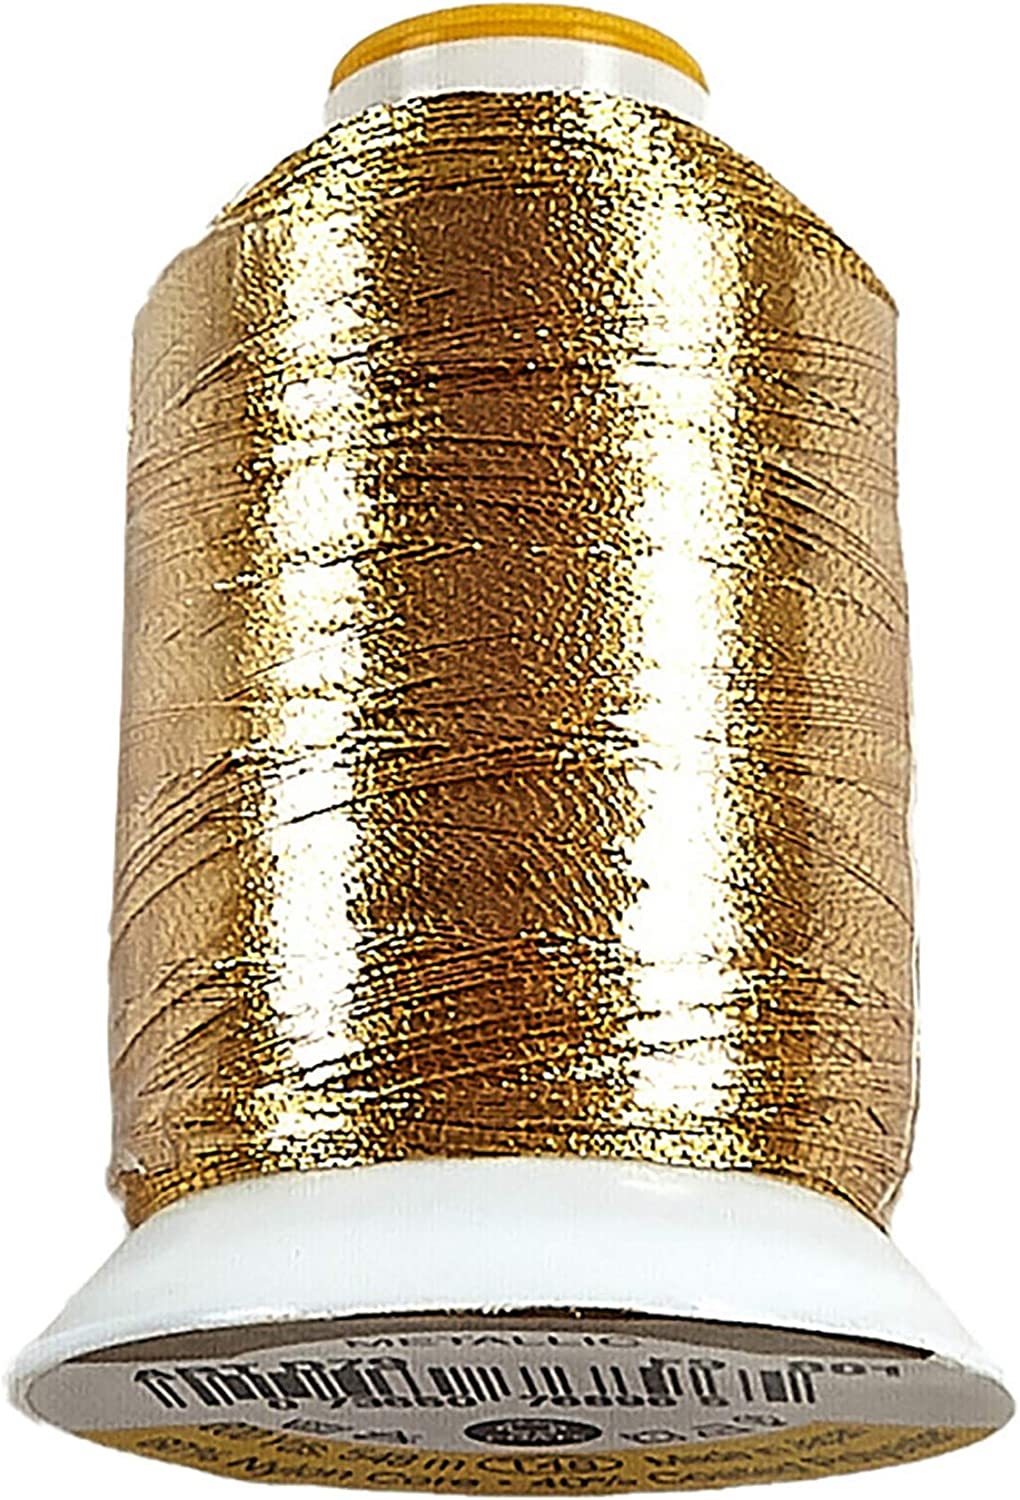 Gold /& Silver W 2 Colors Polyester Embroidery Machine Thread